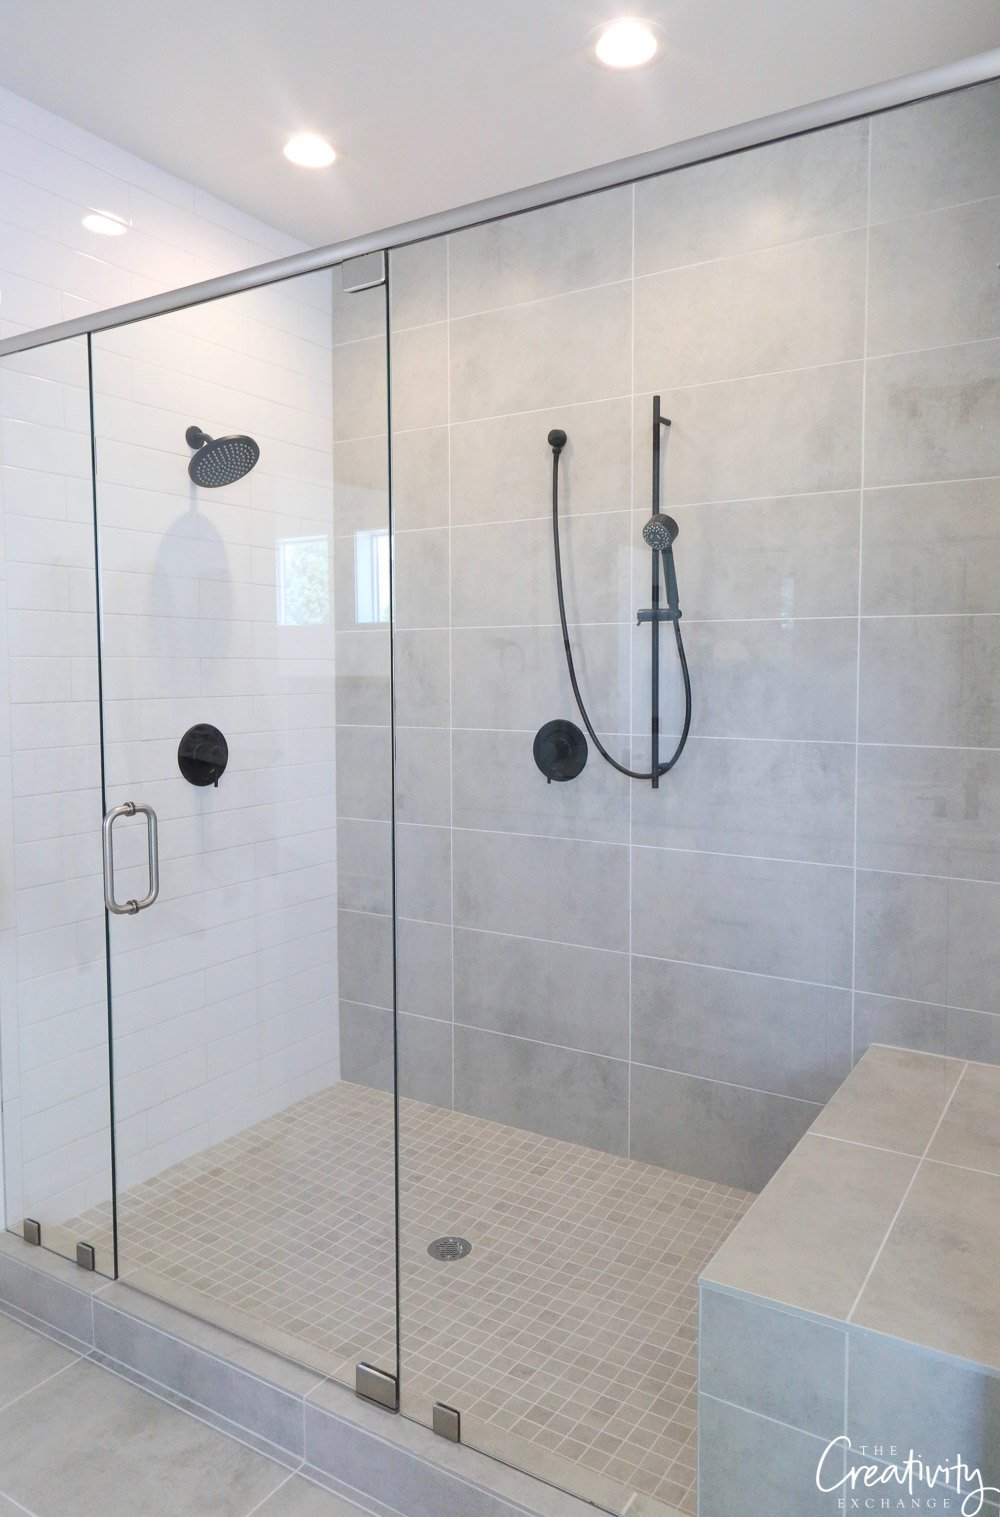 Master bathroom large walk in shower.